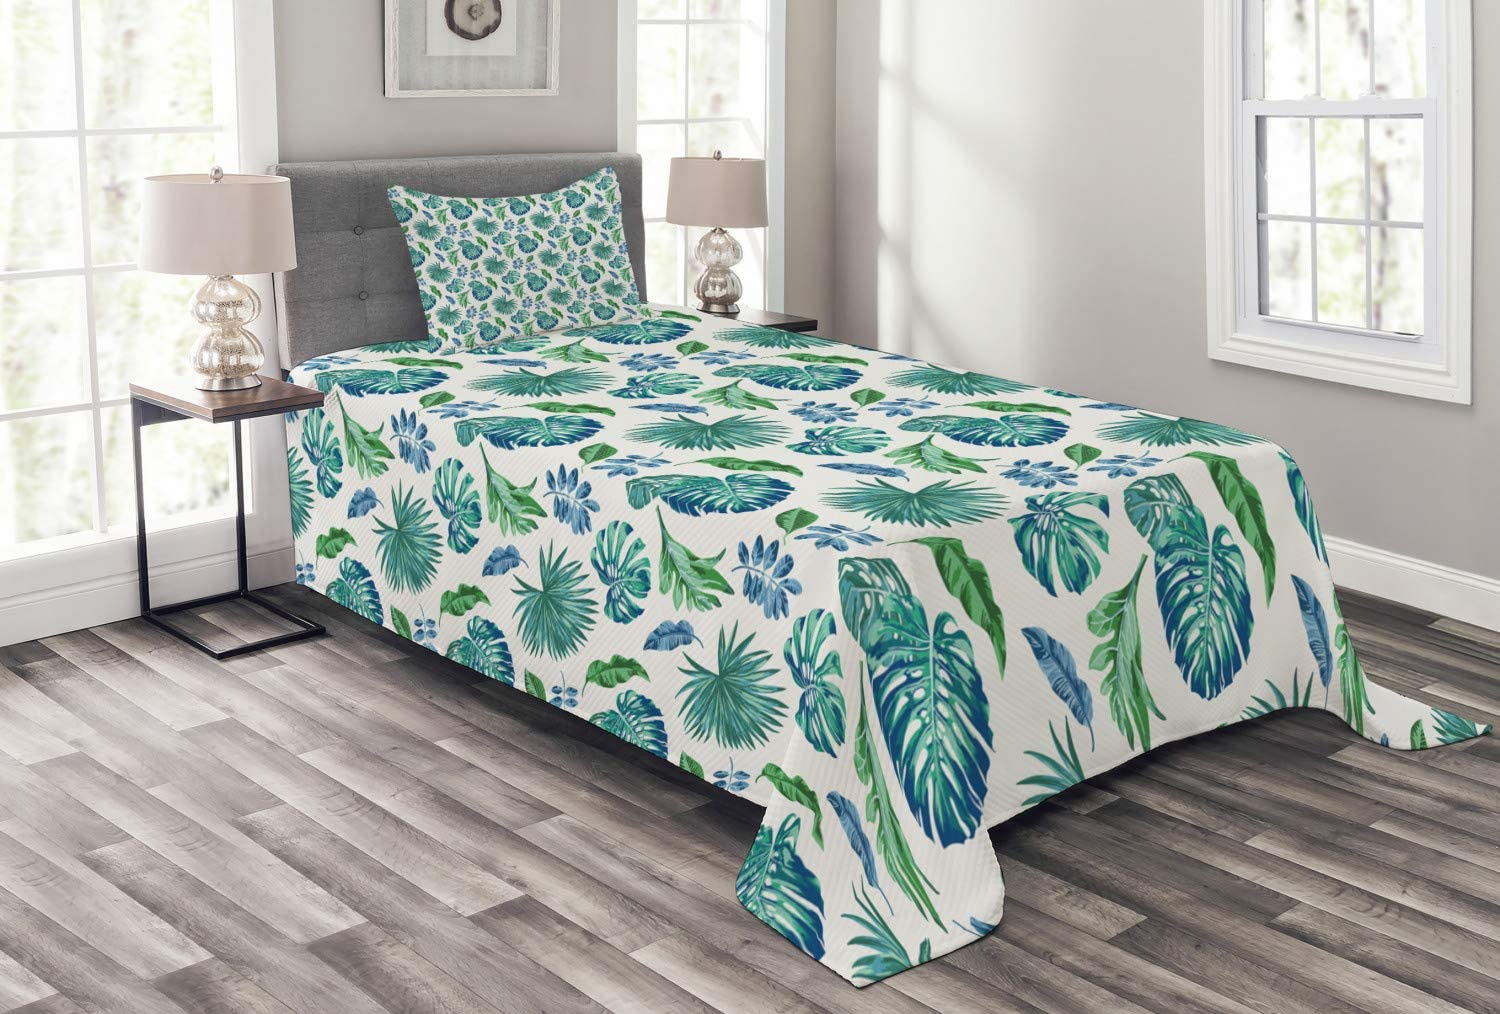 Ambesonne Green Courier shipping free shipping Leaf Bedspread Monstera Leave Palm Max 78% OFF Tree Coconut